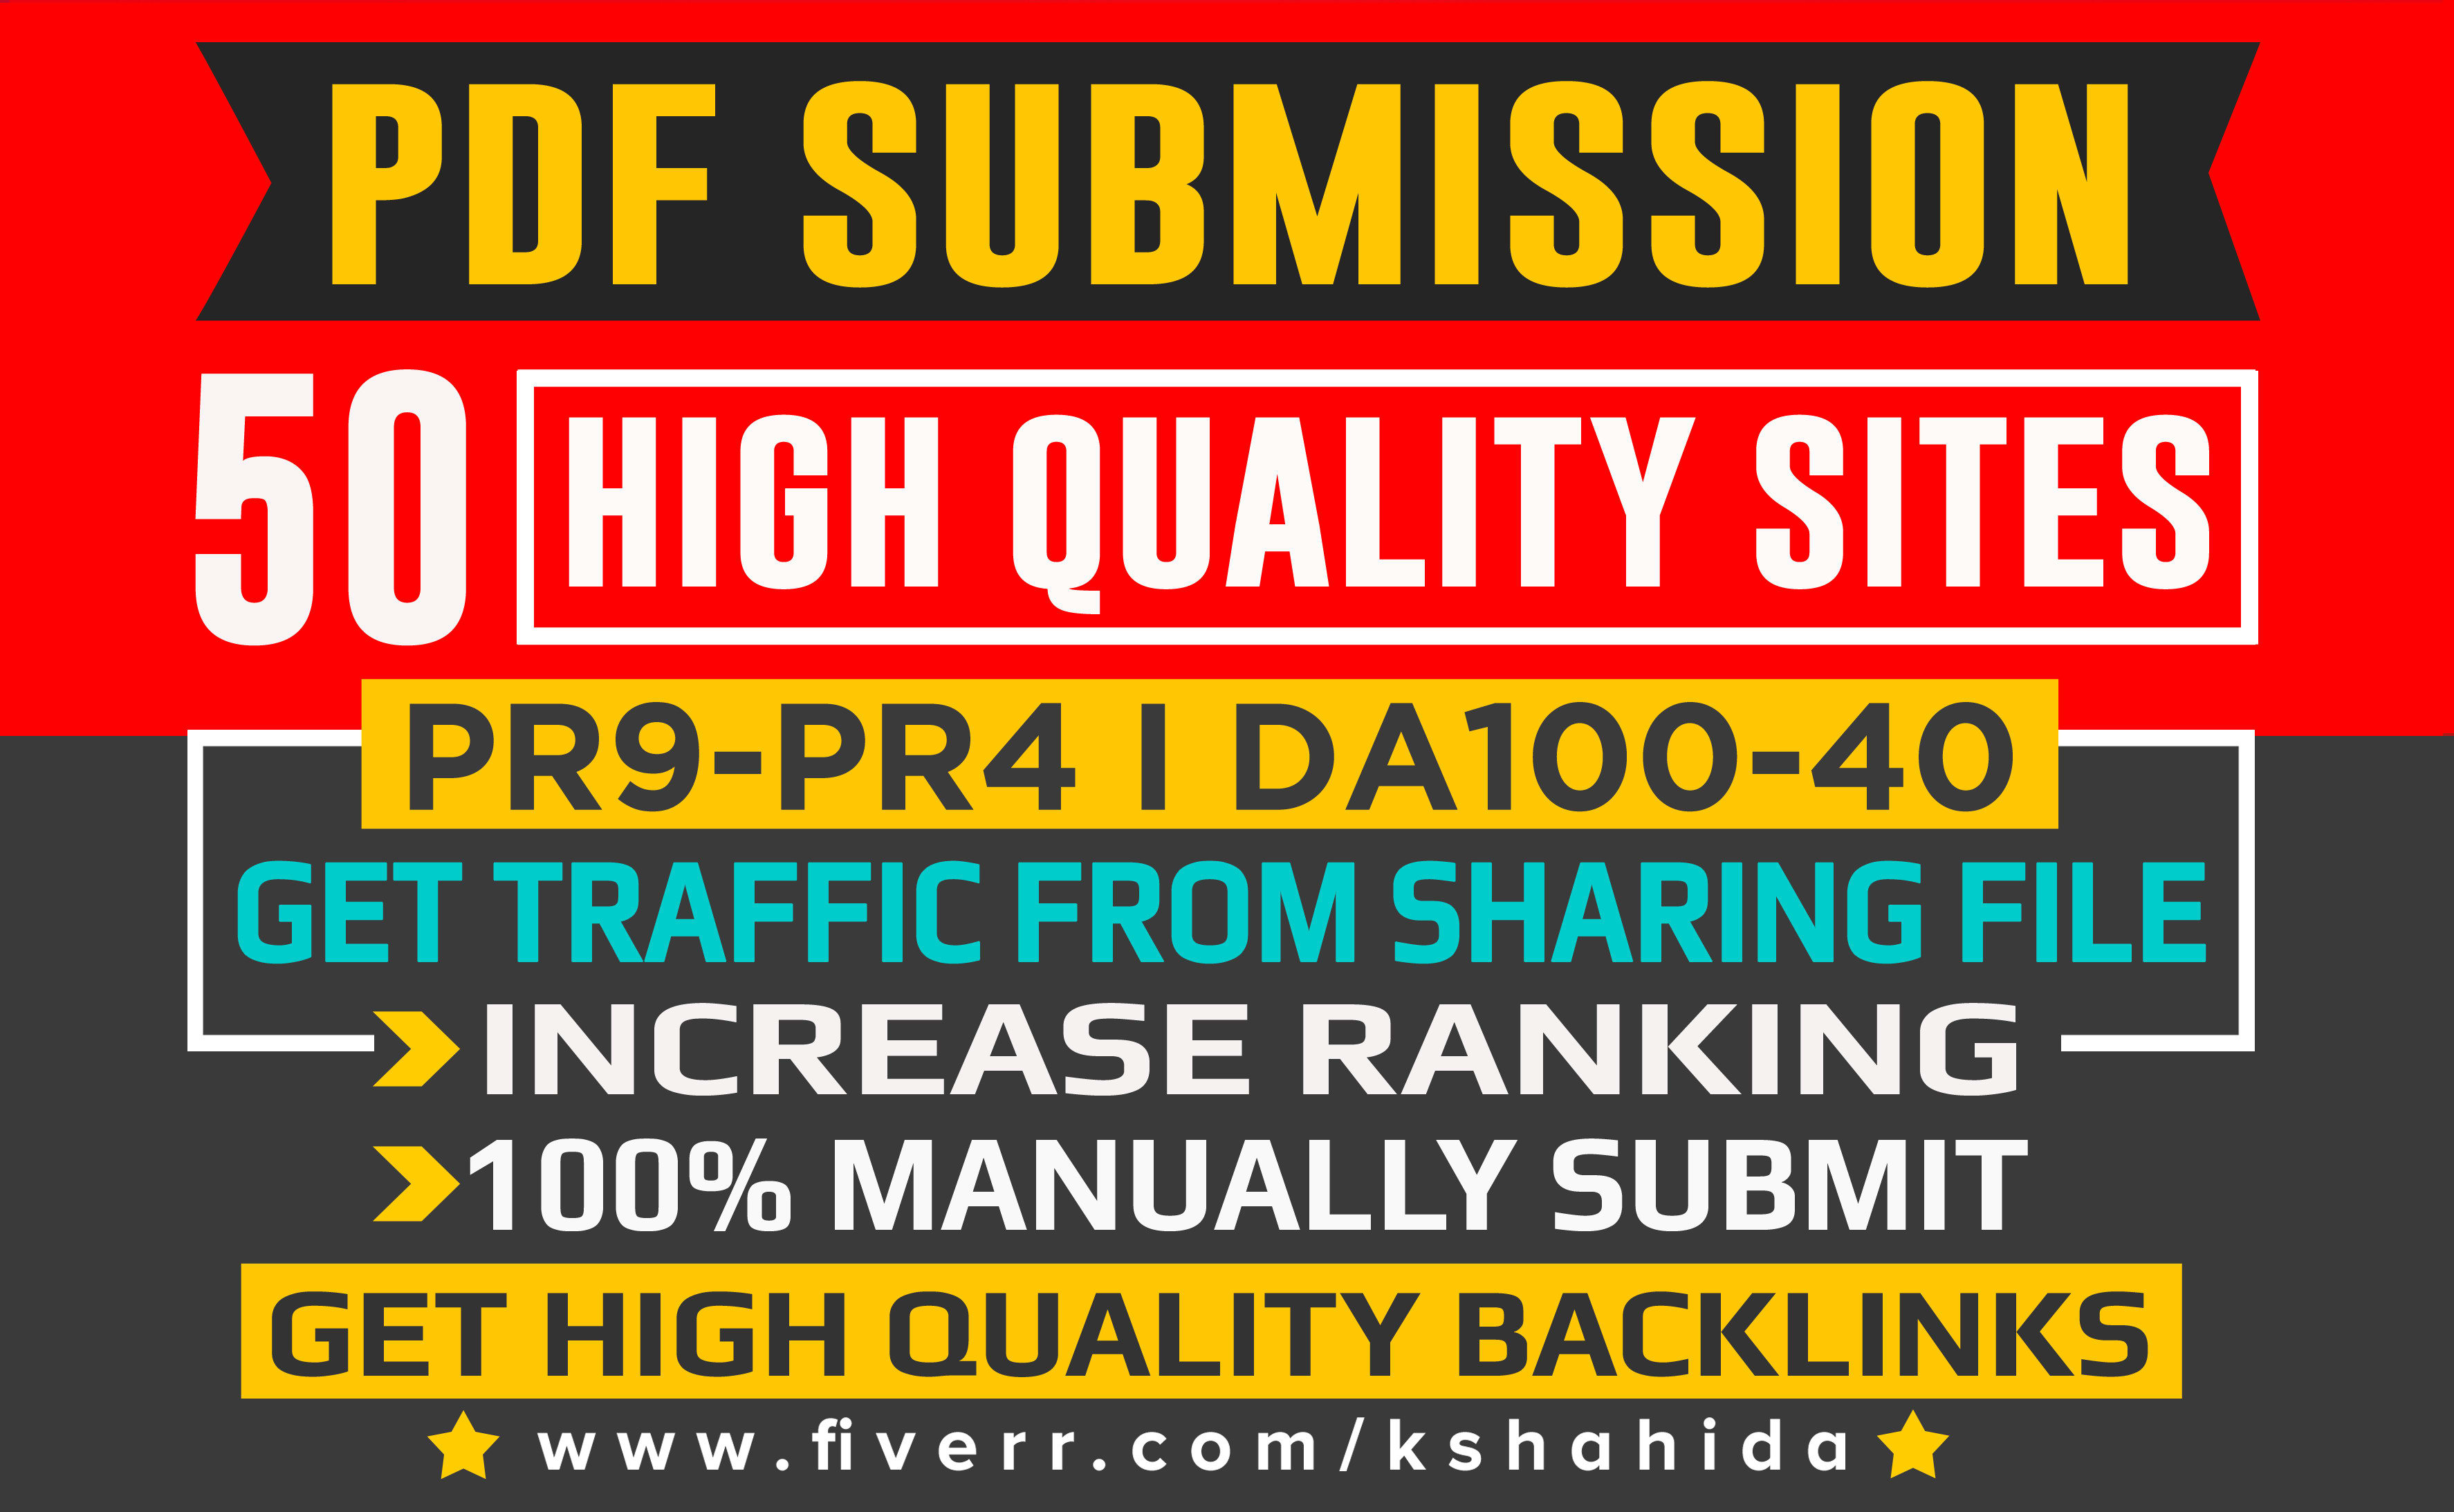 PDF submission to 50 document sharing sites for Quality Backlinks